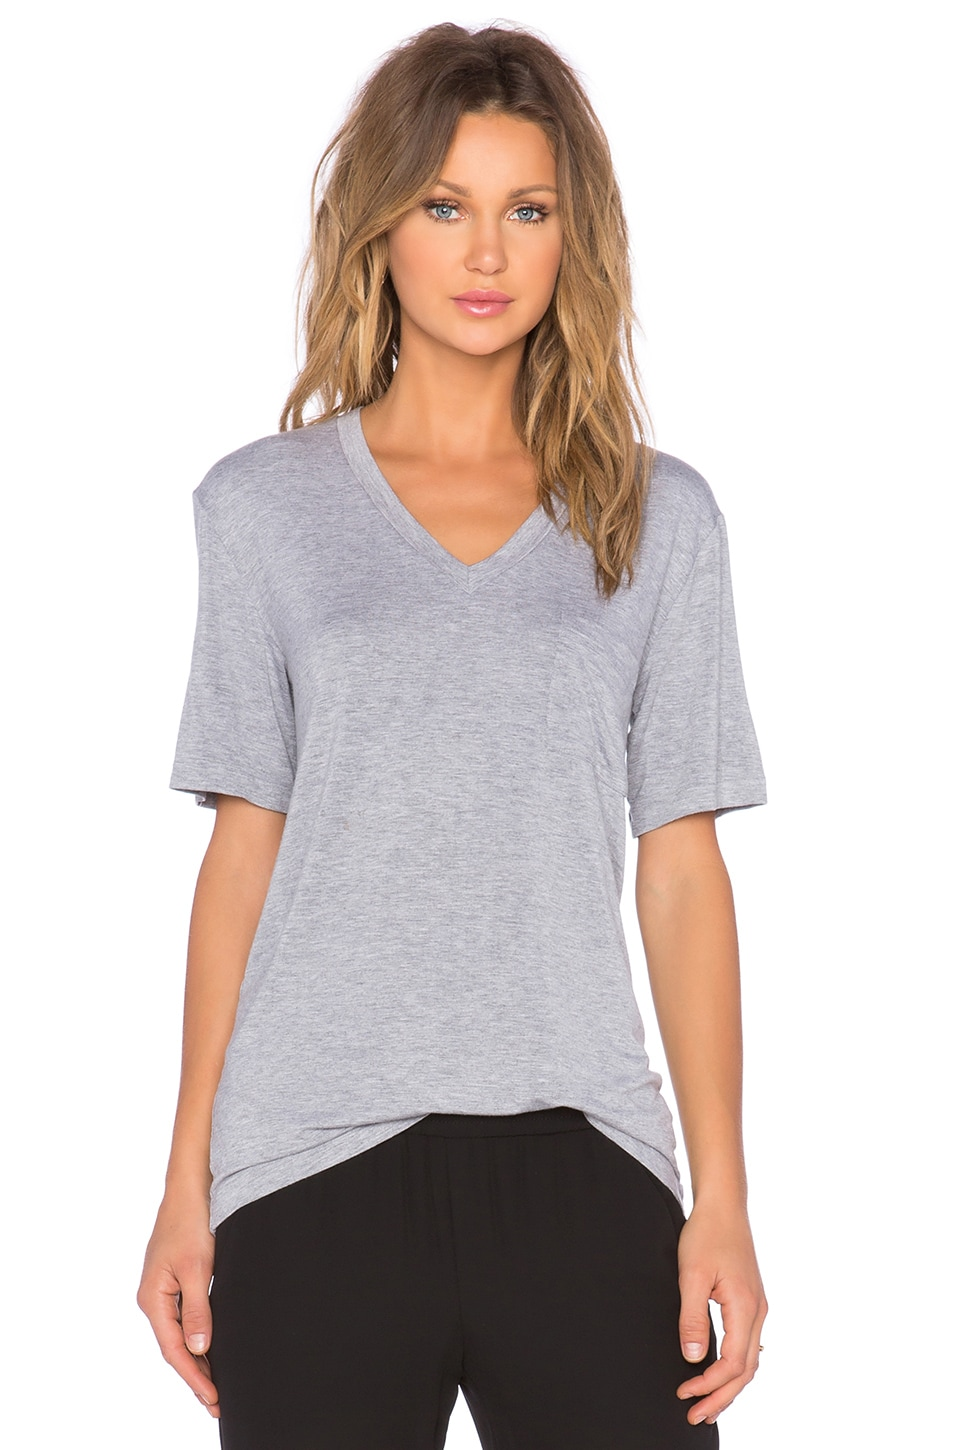 The Fifth Label Here Comes The Sun T-Shirt in Grey Marle